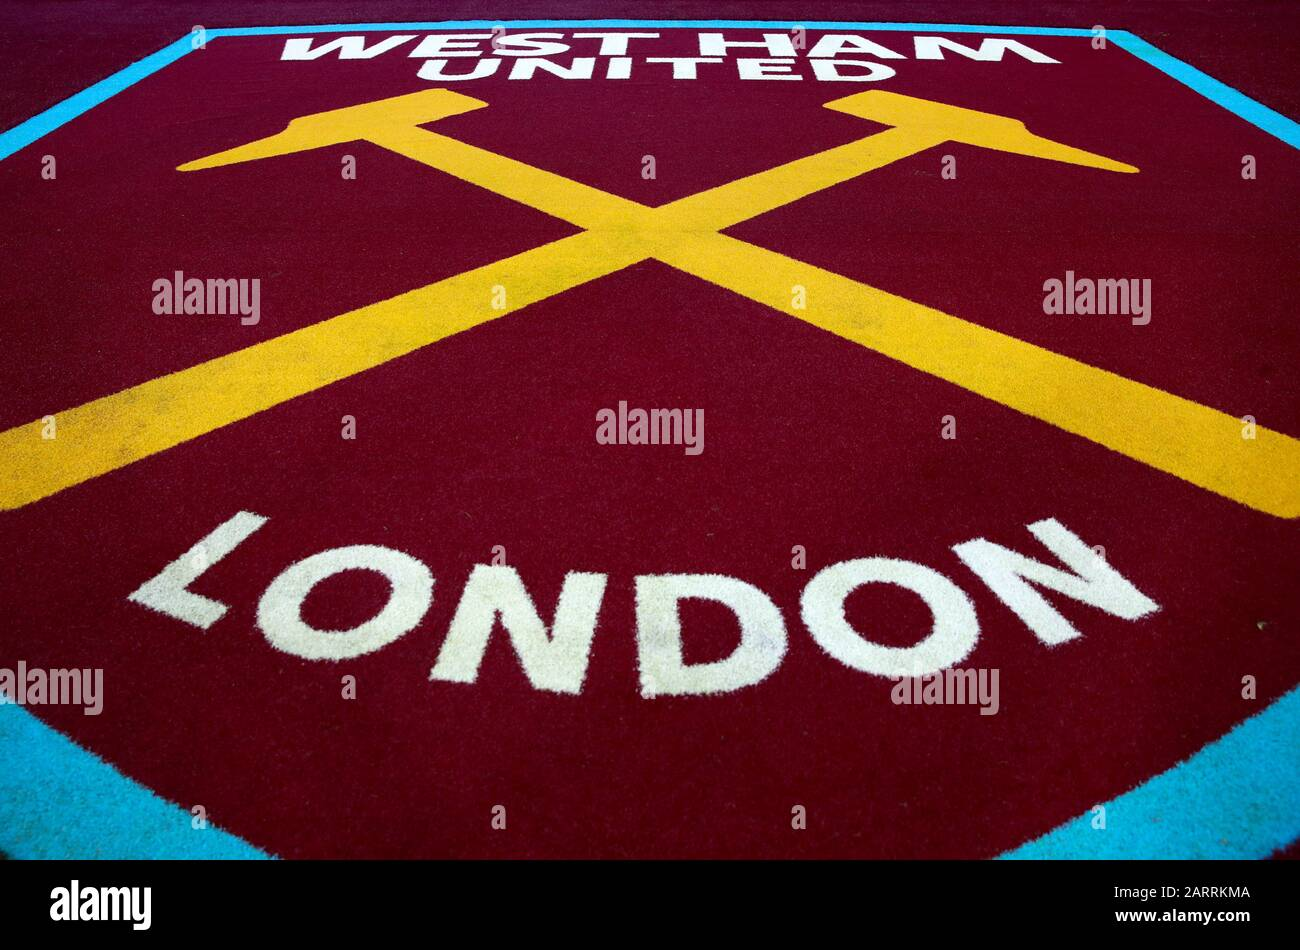 West Ham Logo High Resolution Stock Photography And Images Alamy